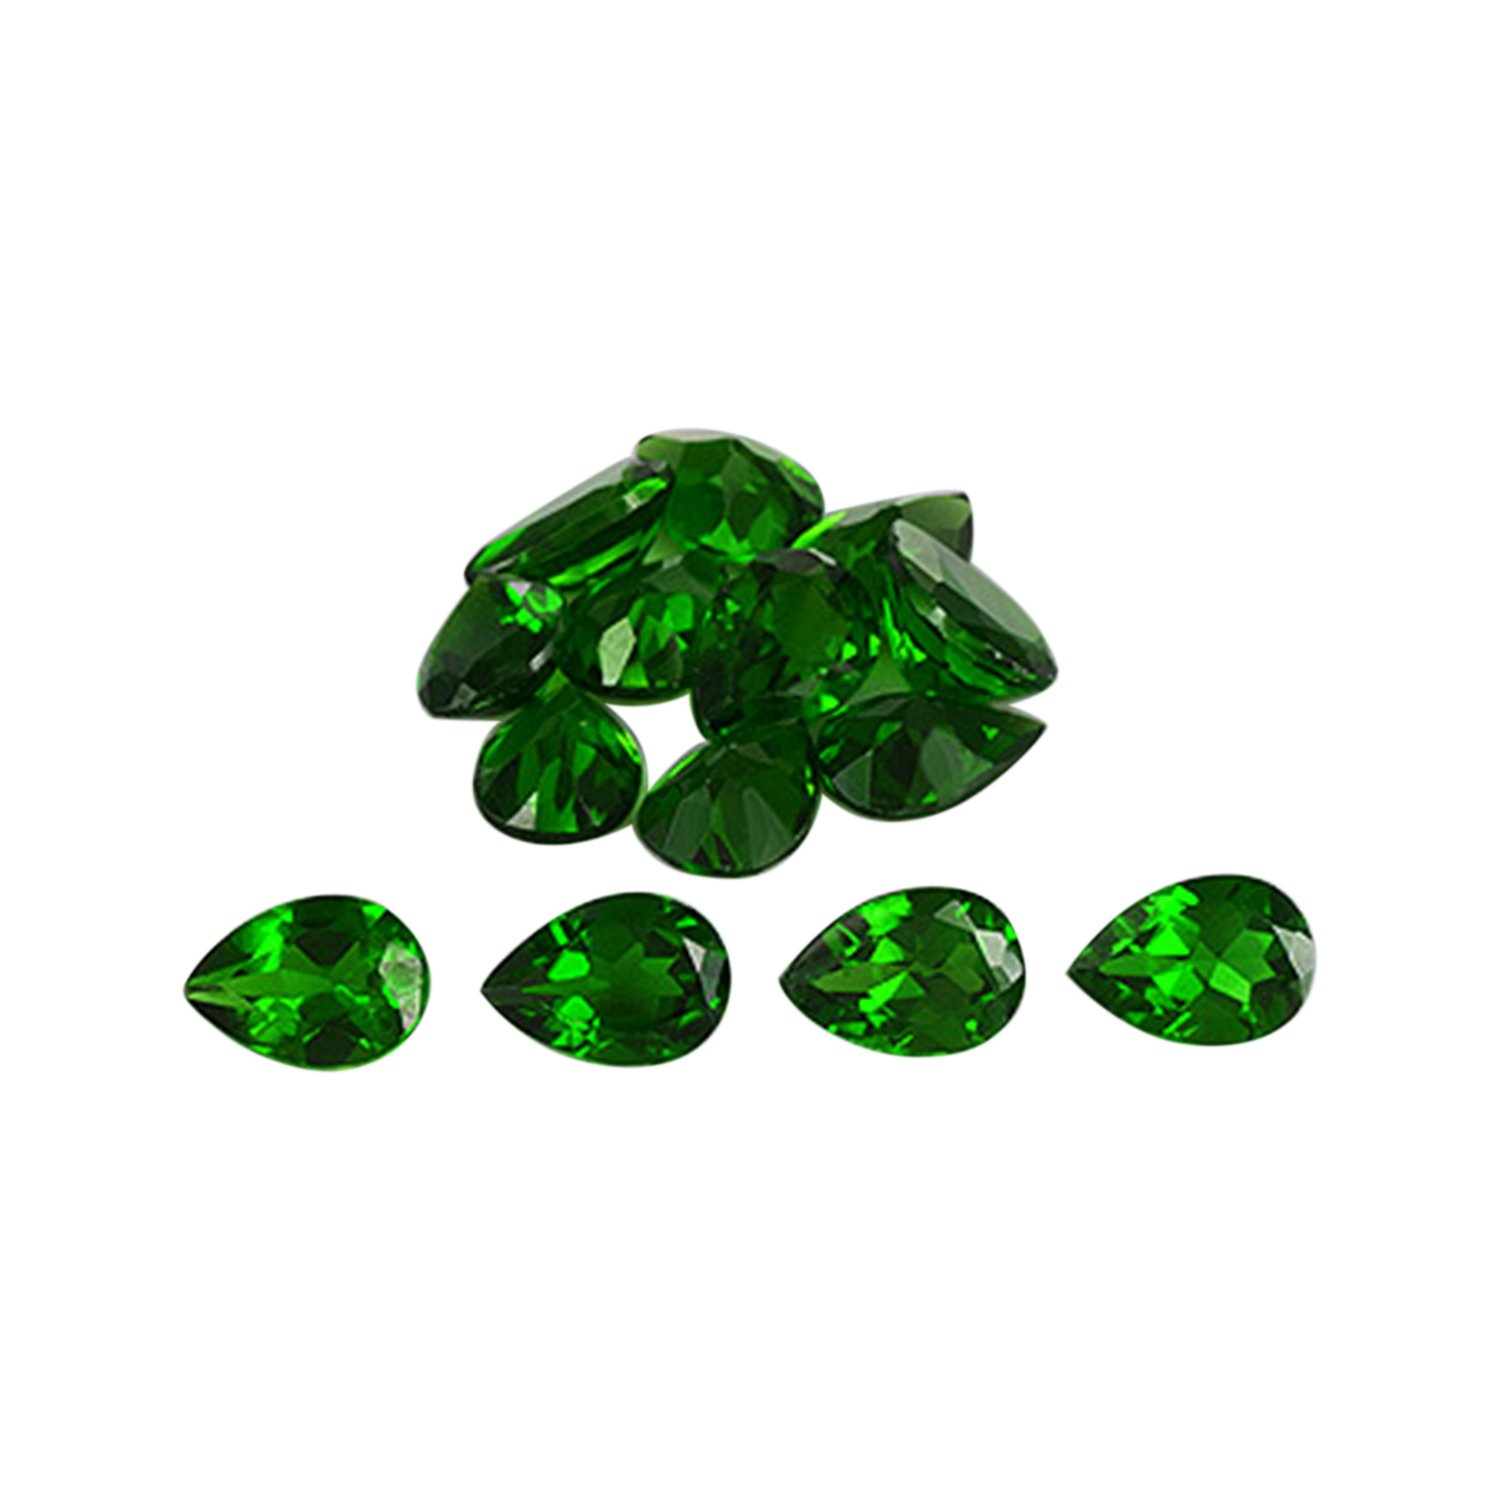 Fine Faceted Top Grade Green Chrome Diopside 7x5x3.2 mm Pear Shape Wholesale Jewelry Gemstone Lot